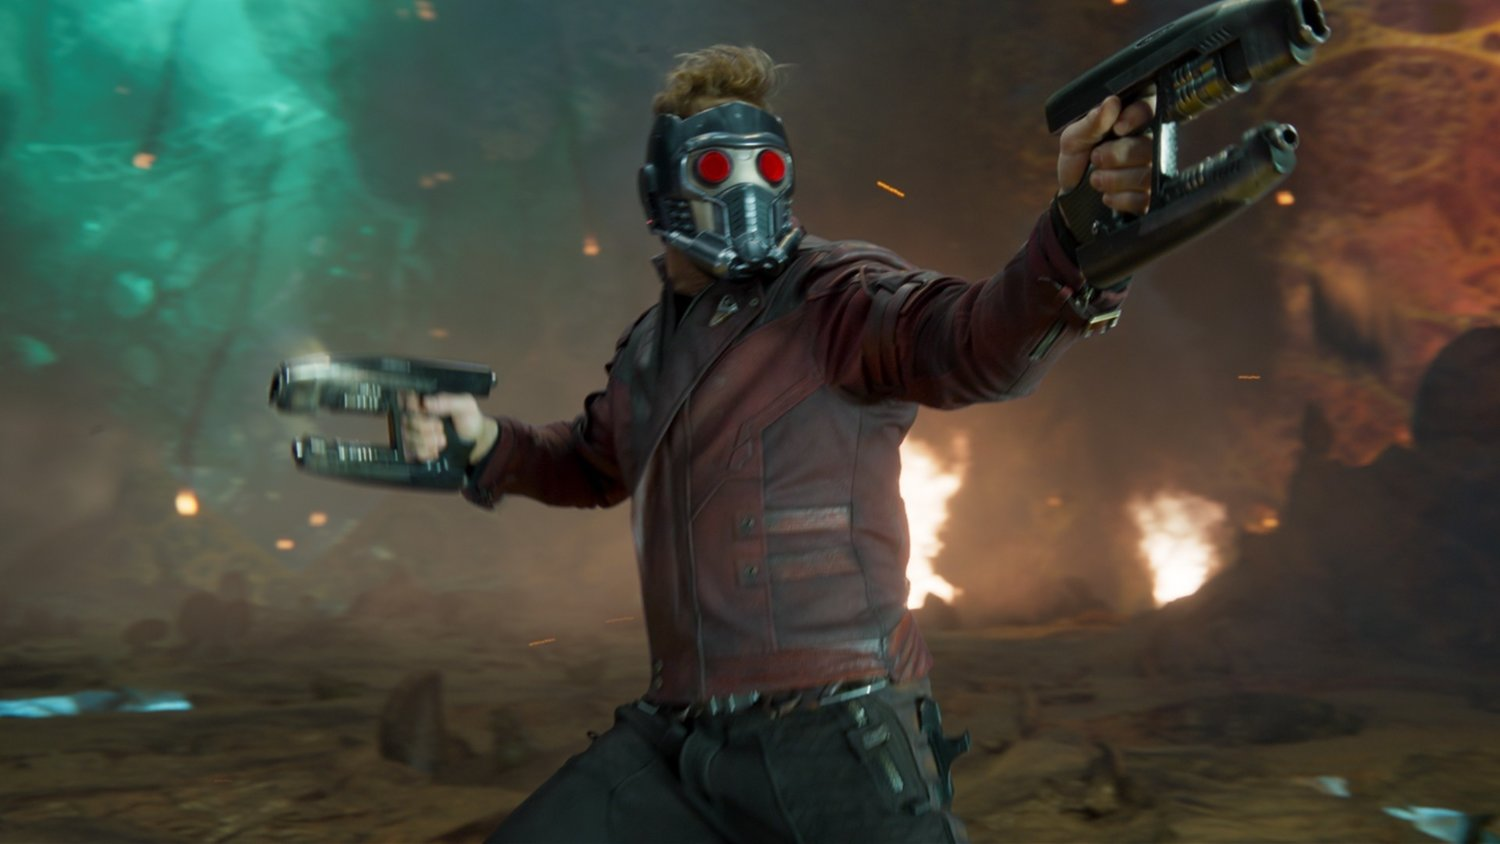 GUARDIANS OF THE GALAXY VOL. 2 Gets a Perfect 100 Score in Test Screening, Which Is Rare